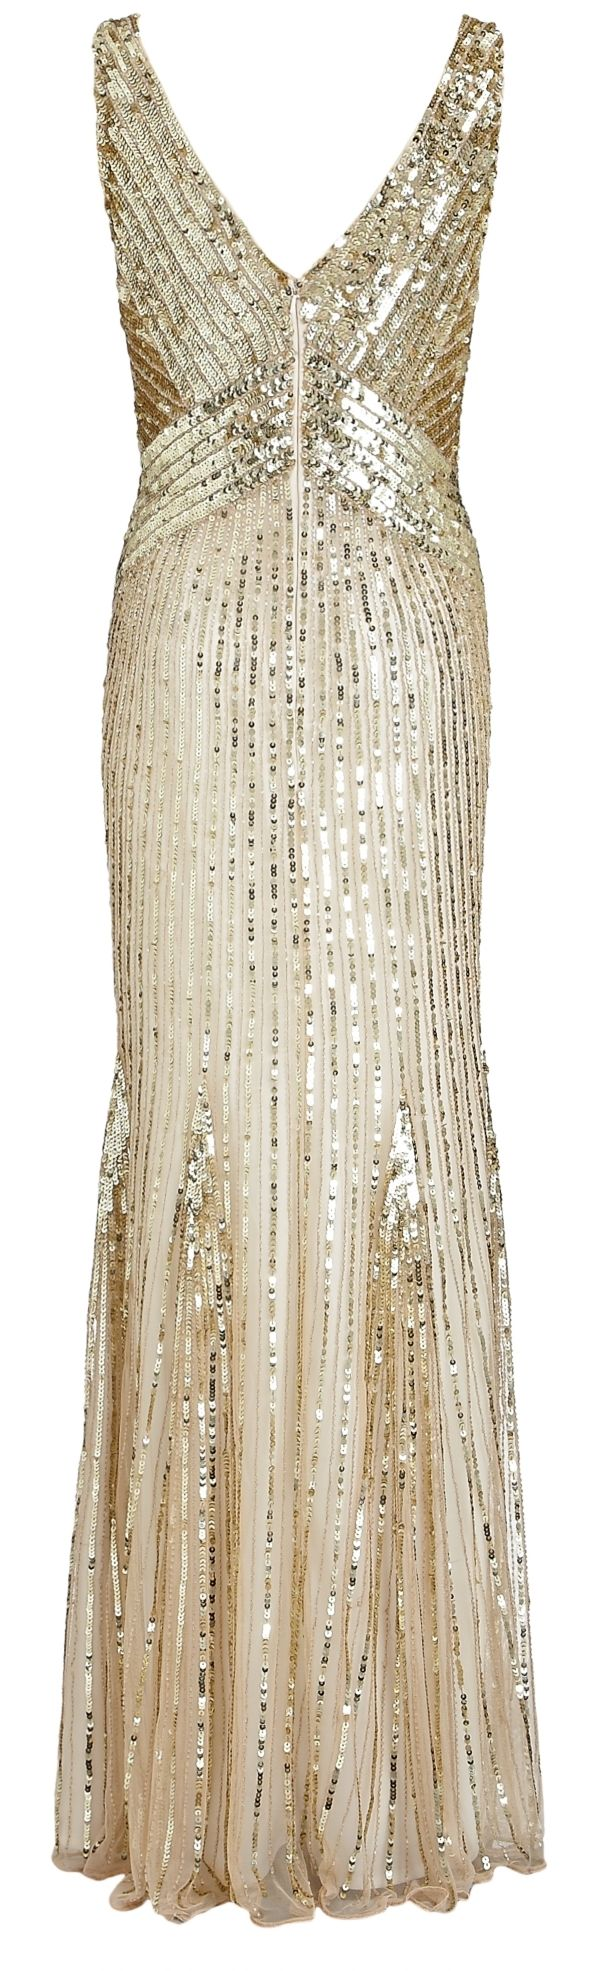 1920's inspired Sequin dress from John Lewis. Gorgeous. I would totally wear this as my wedding gown.